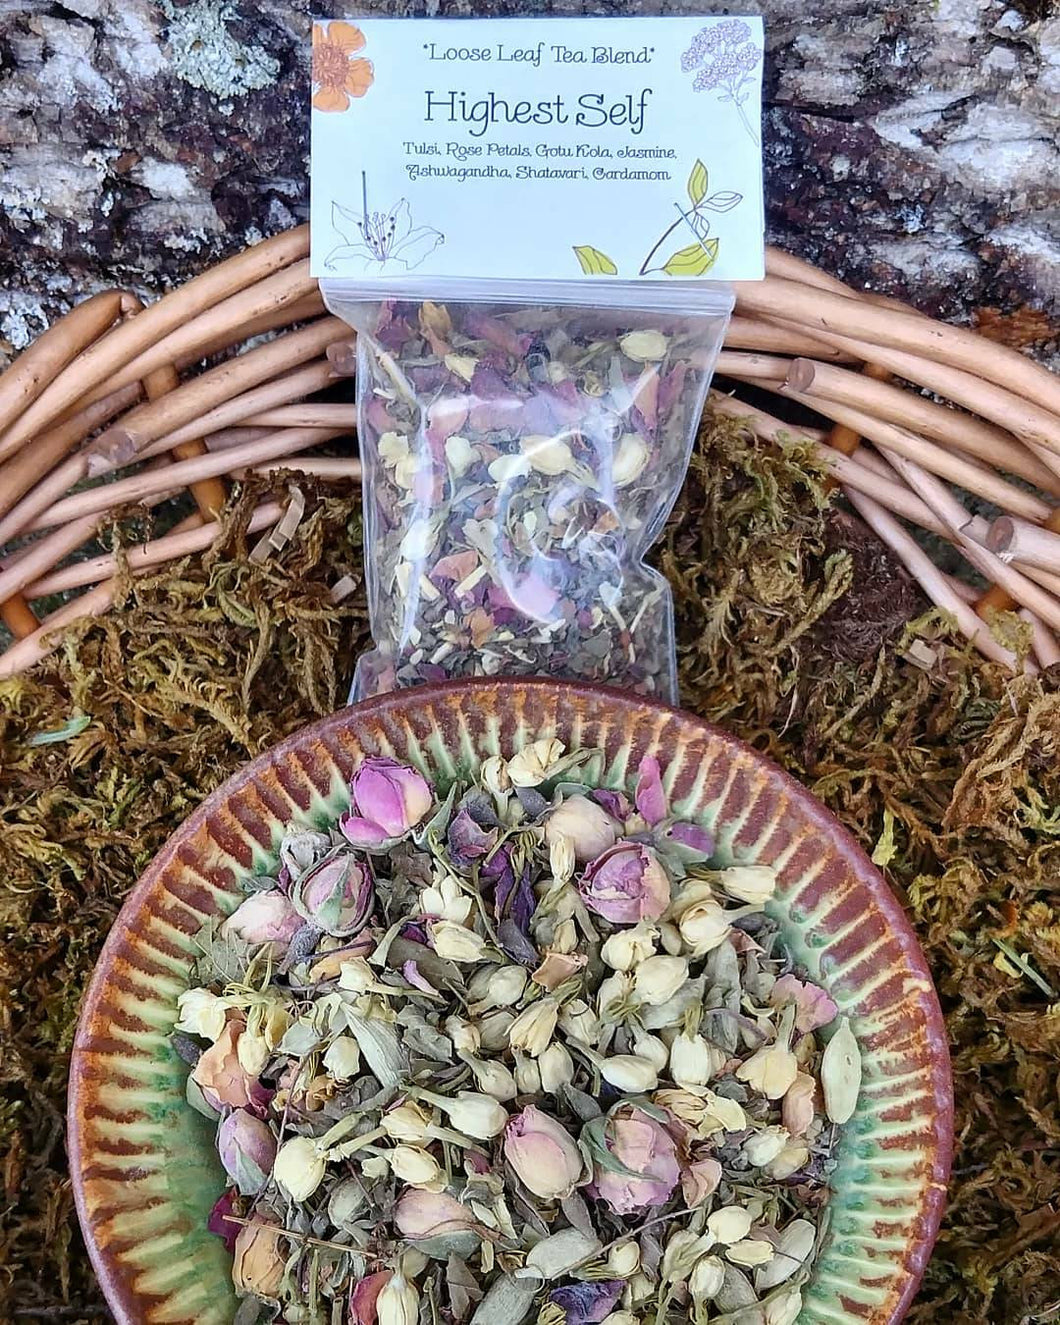 Highest Self ~ Loose Leaf Heart Opening Organic Herbal Tea Blend with Rose Petals, Jasmine, Cardamom & Ashwagandha for Love + Connection, Meditation Herbs